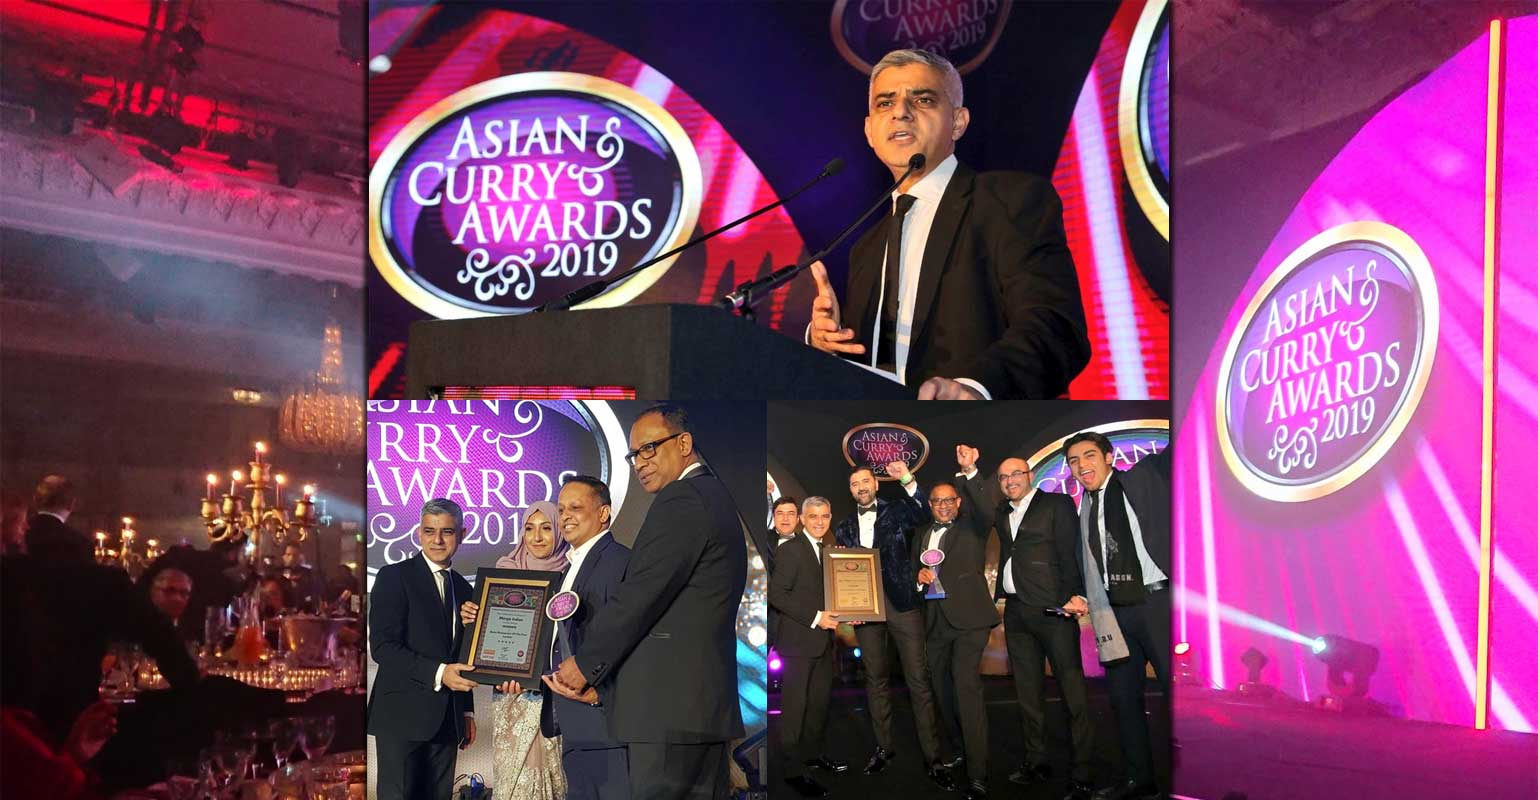 Halal Winners At The Asian Curry Awards 2019 Feed The Lion